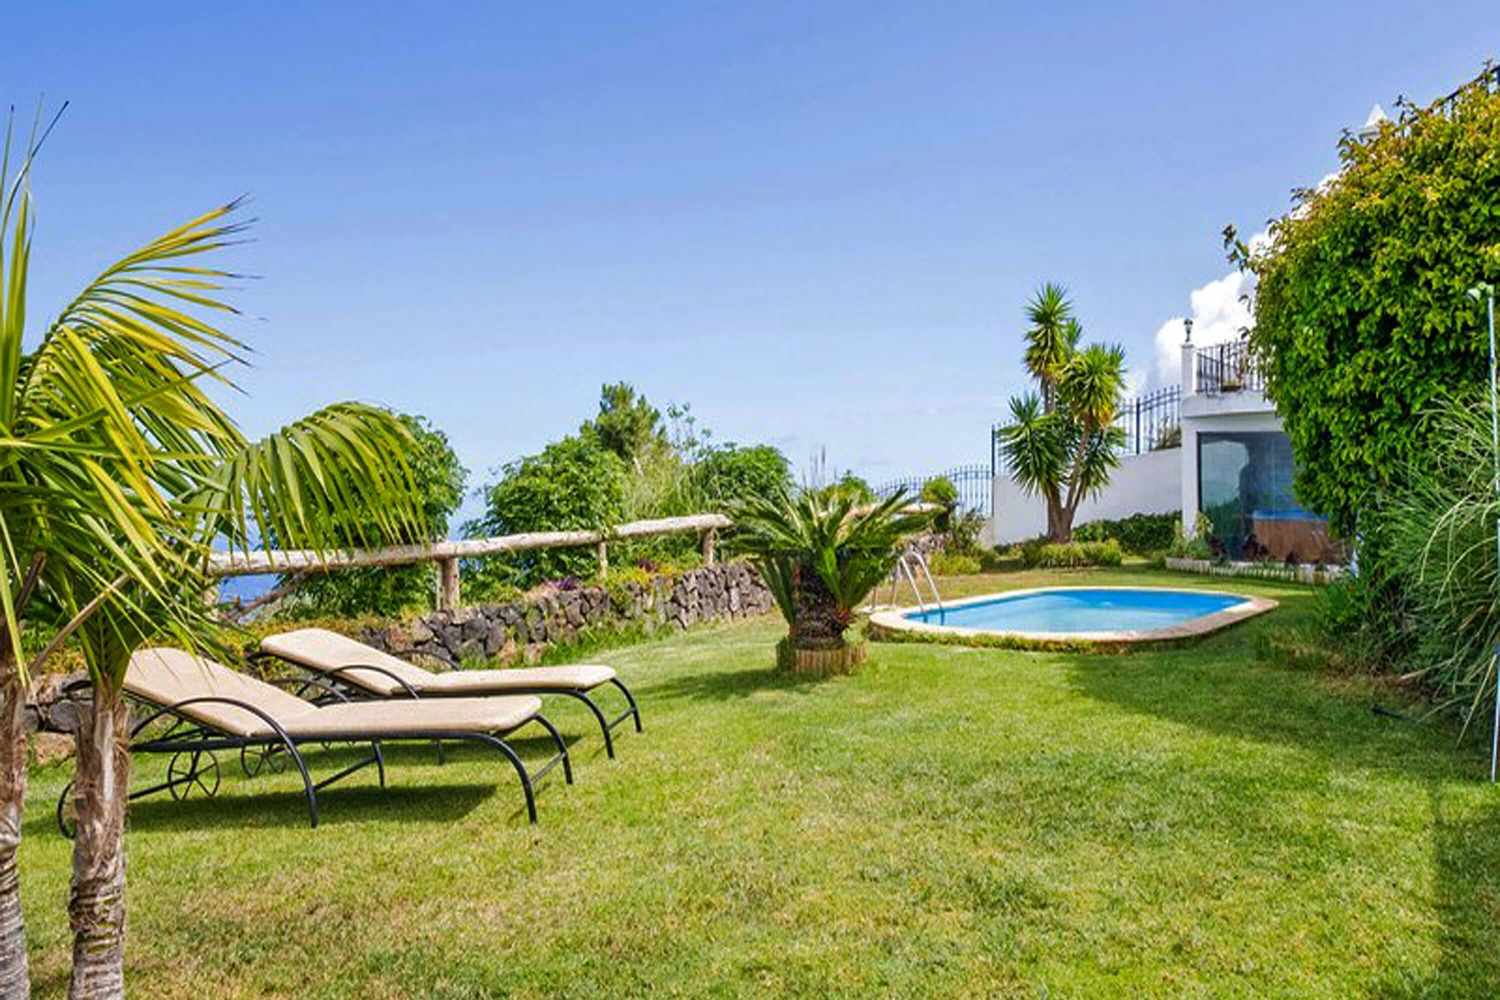 Romantic holiday home with private pool for a relaxing holiday in the north of Tenerife